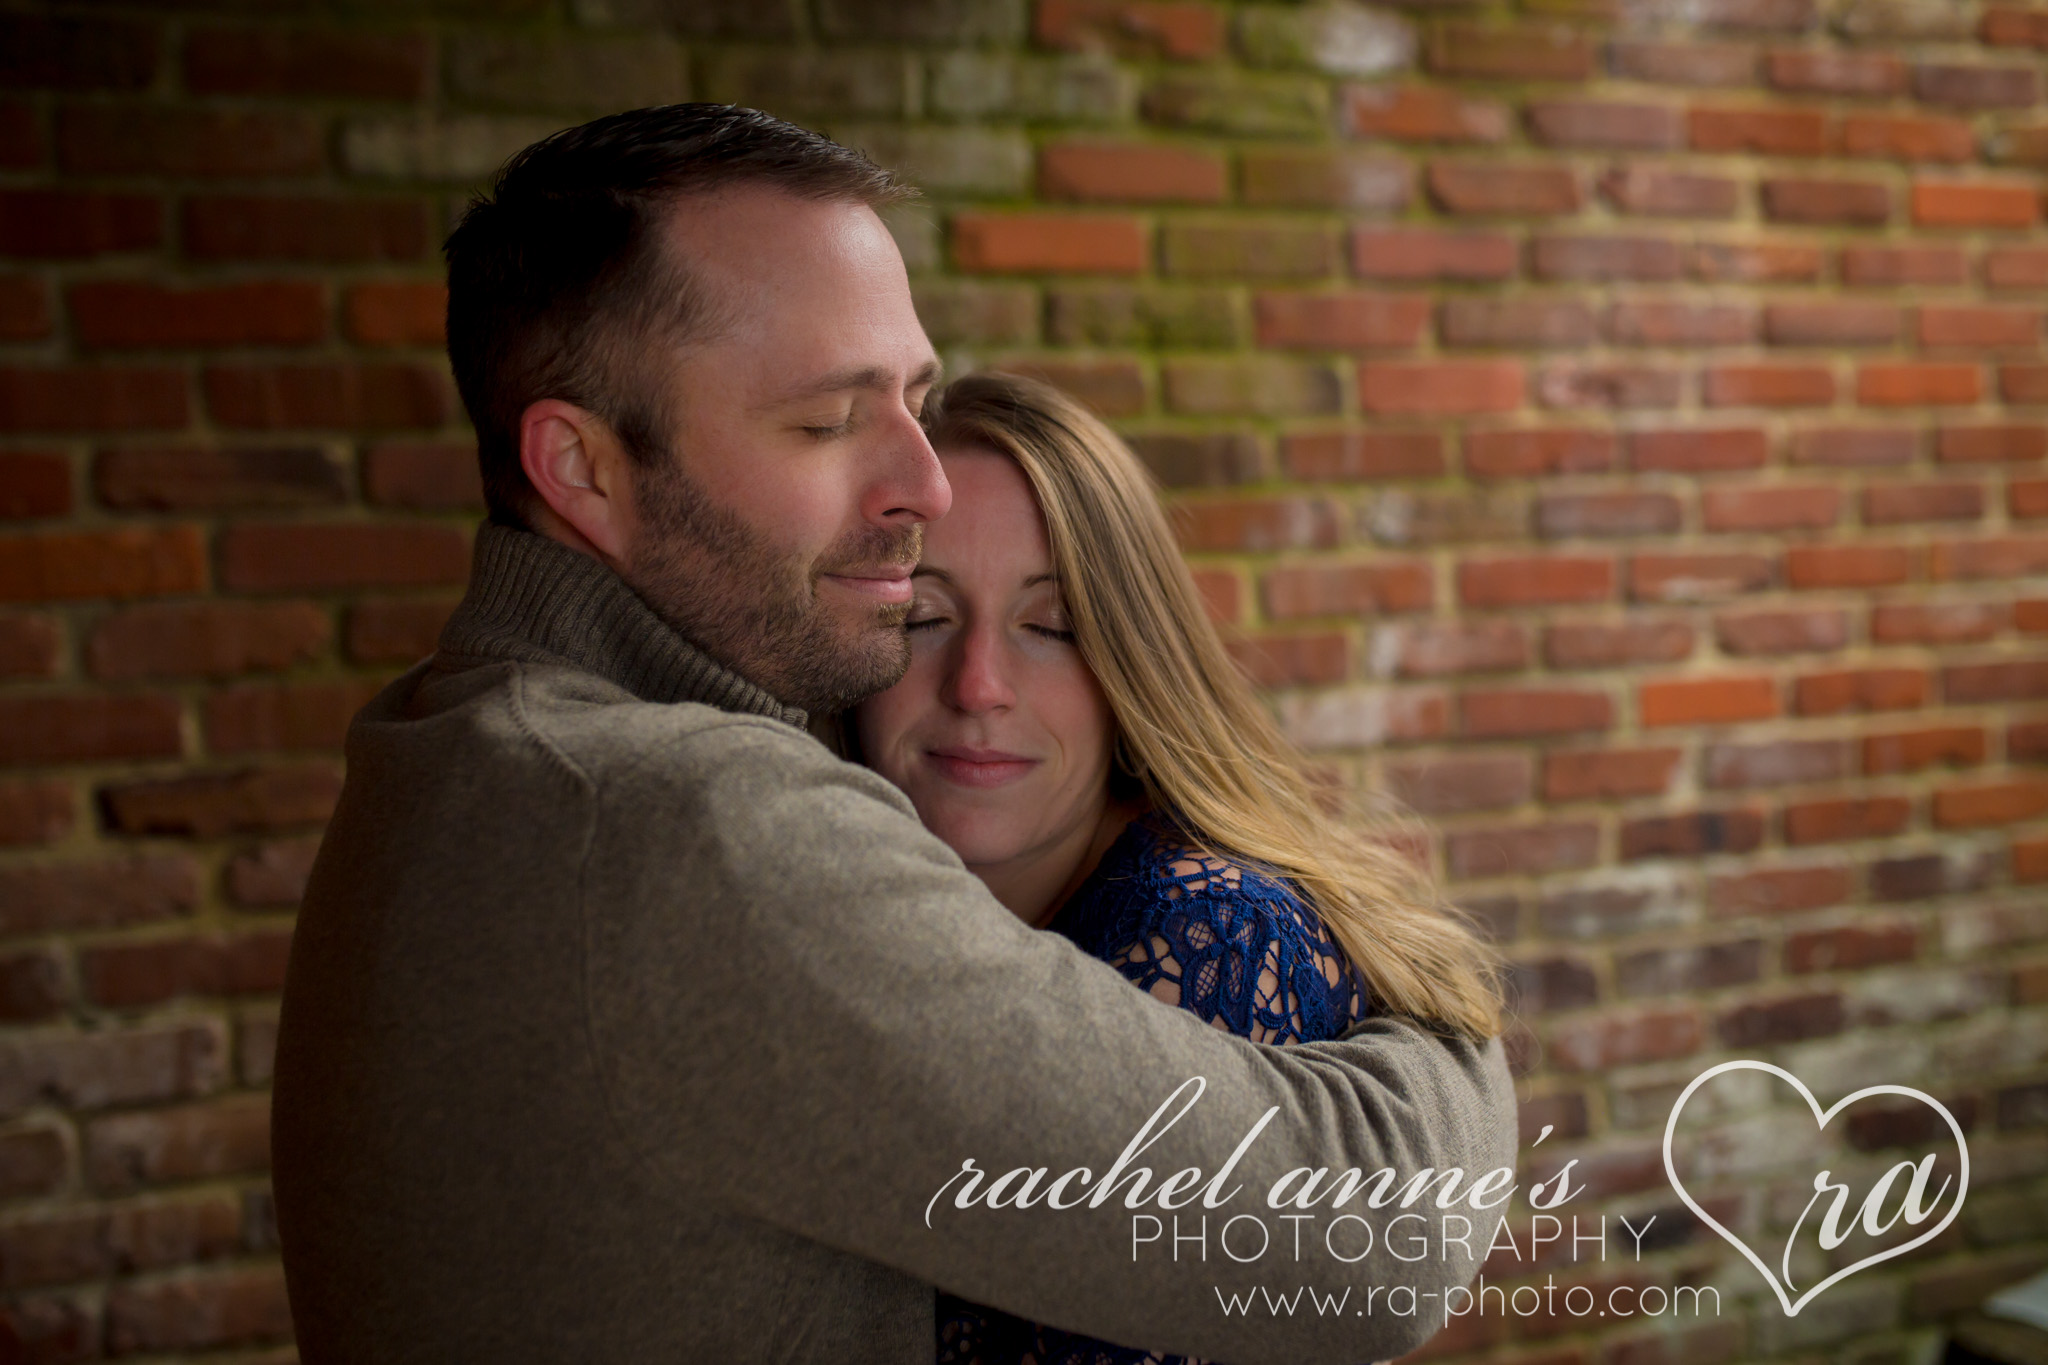 088-JKM-DUBOIS-PA-ENGAGEMENT-PHOTOGRAPHY.jpg